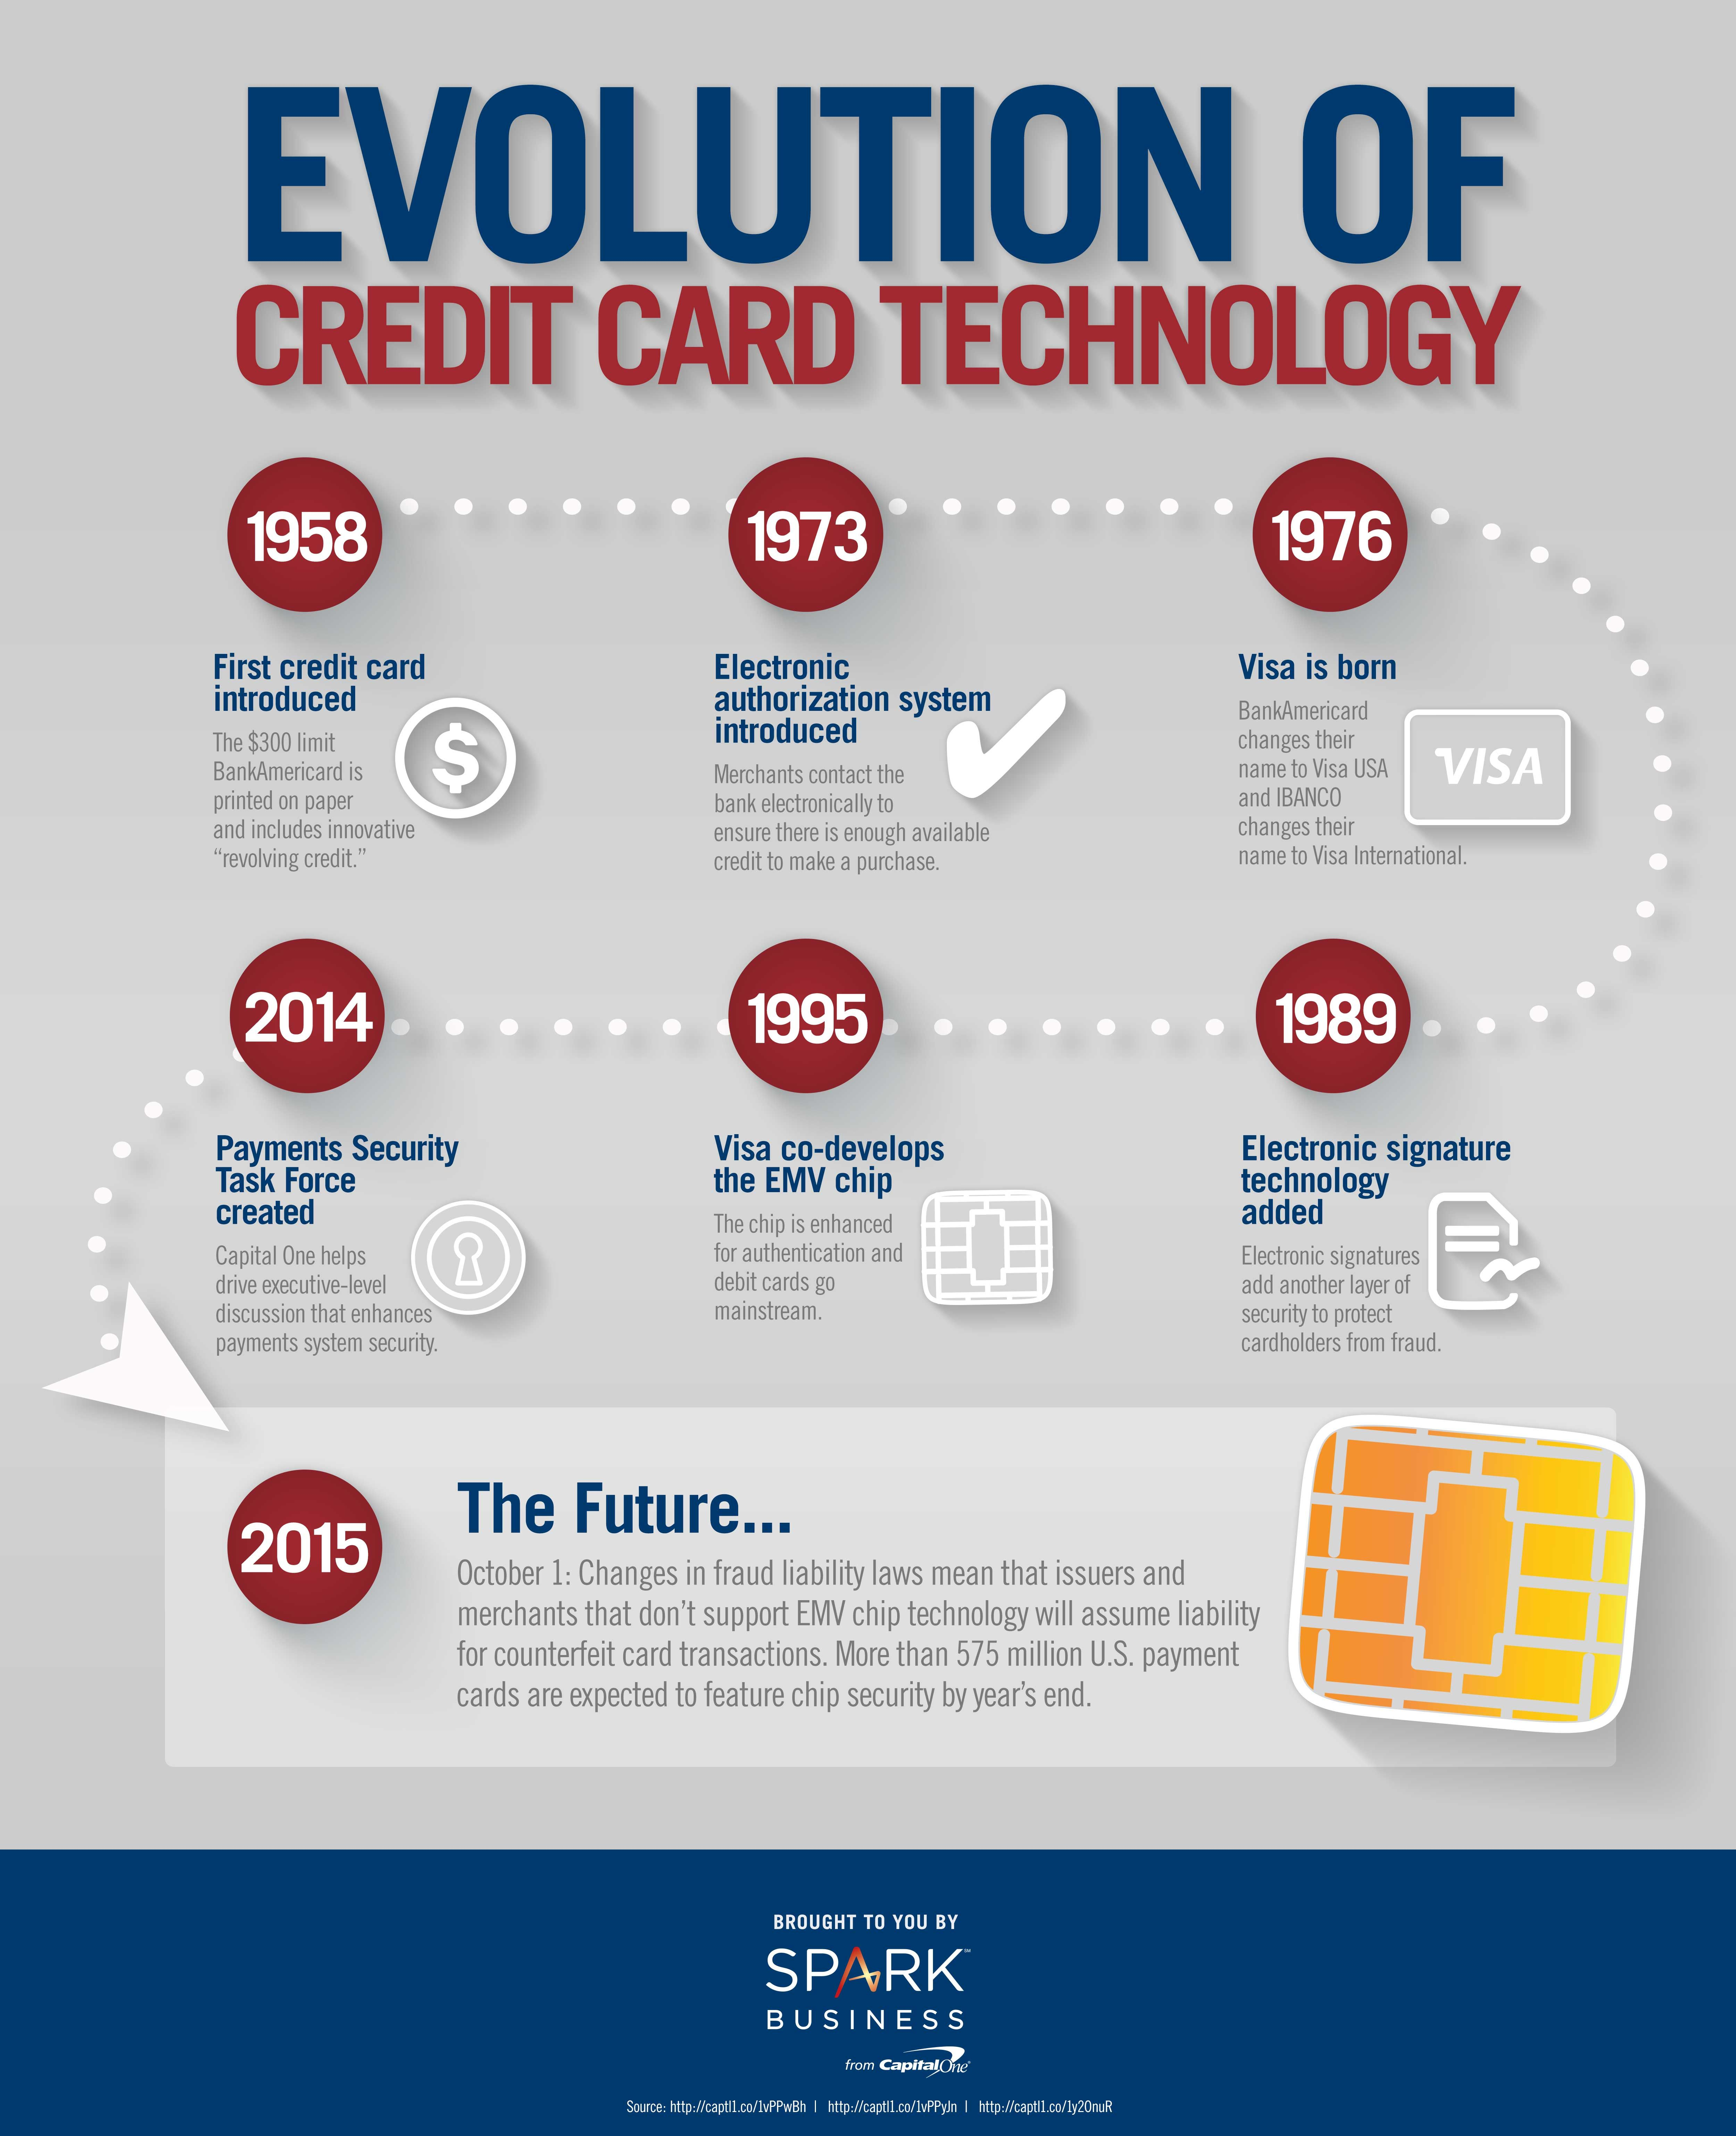 As Banks And Credit Card Companies Implement EMV Chips